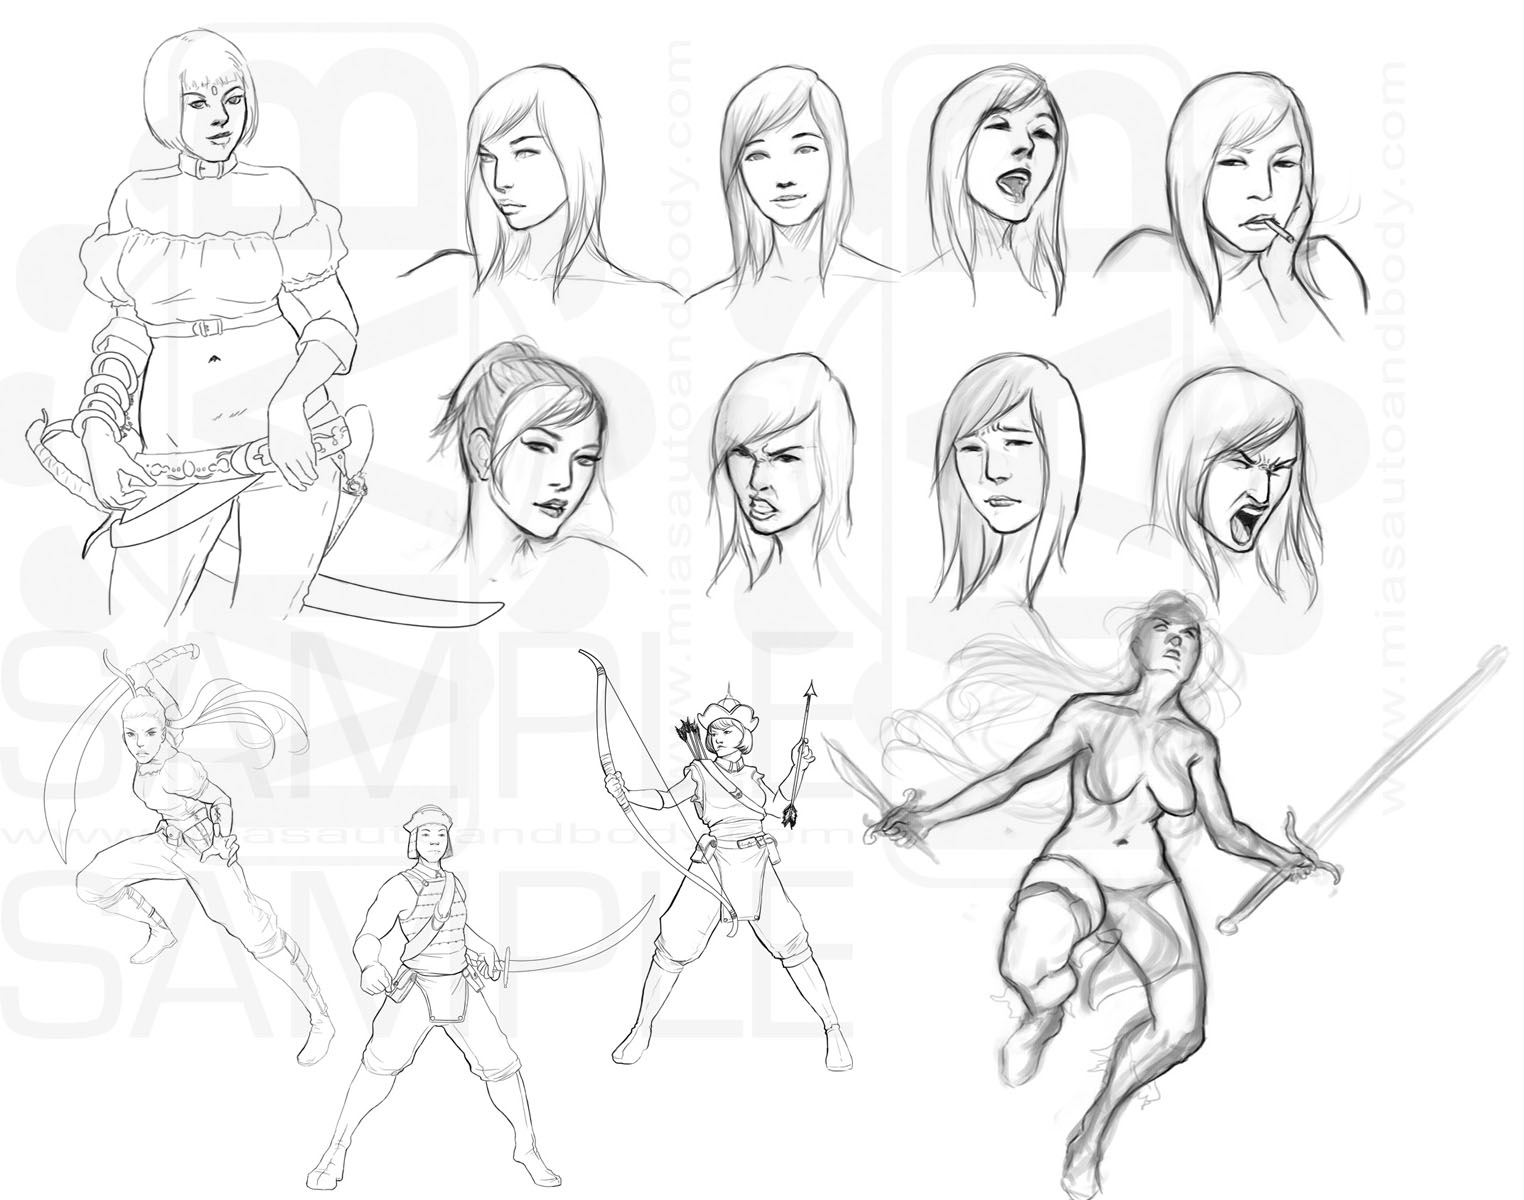 sketch dump XV by DanHowardArt